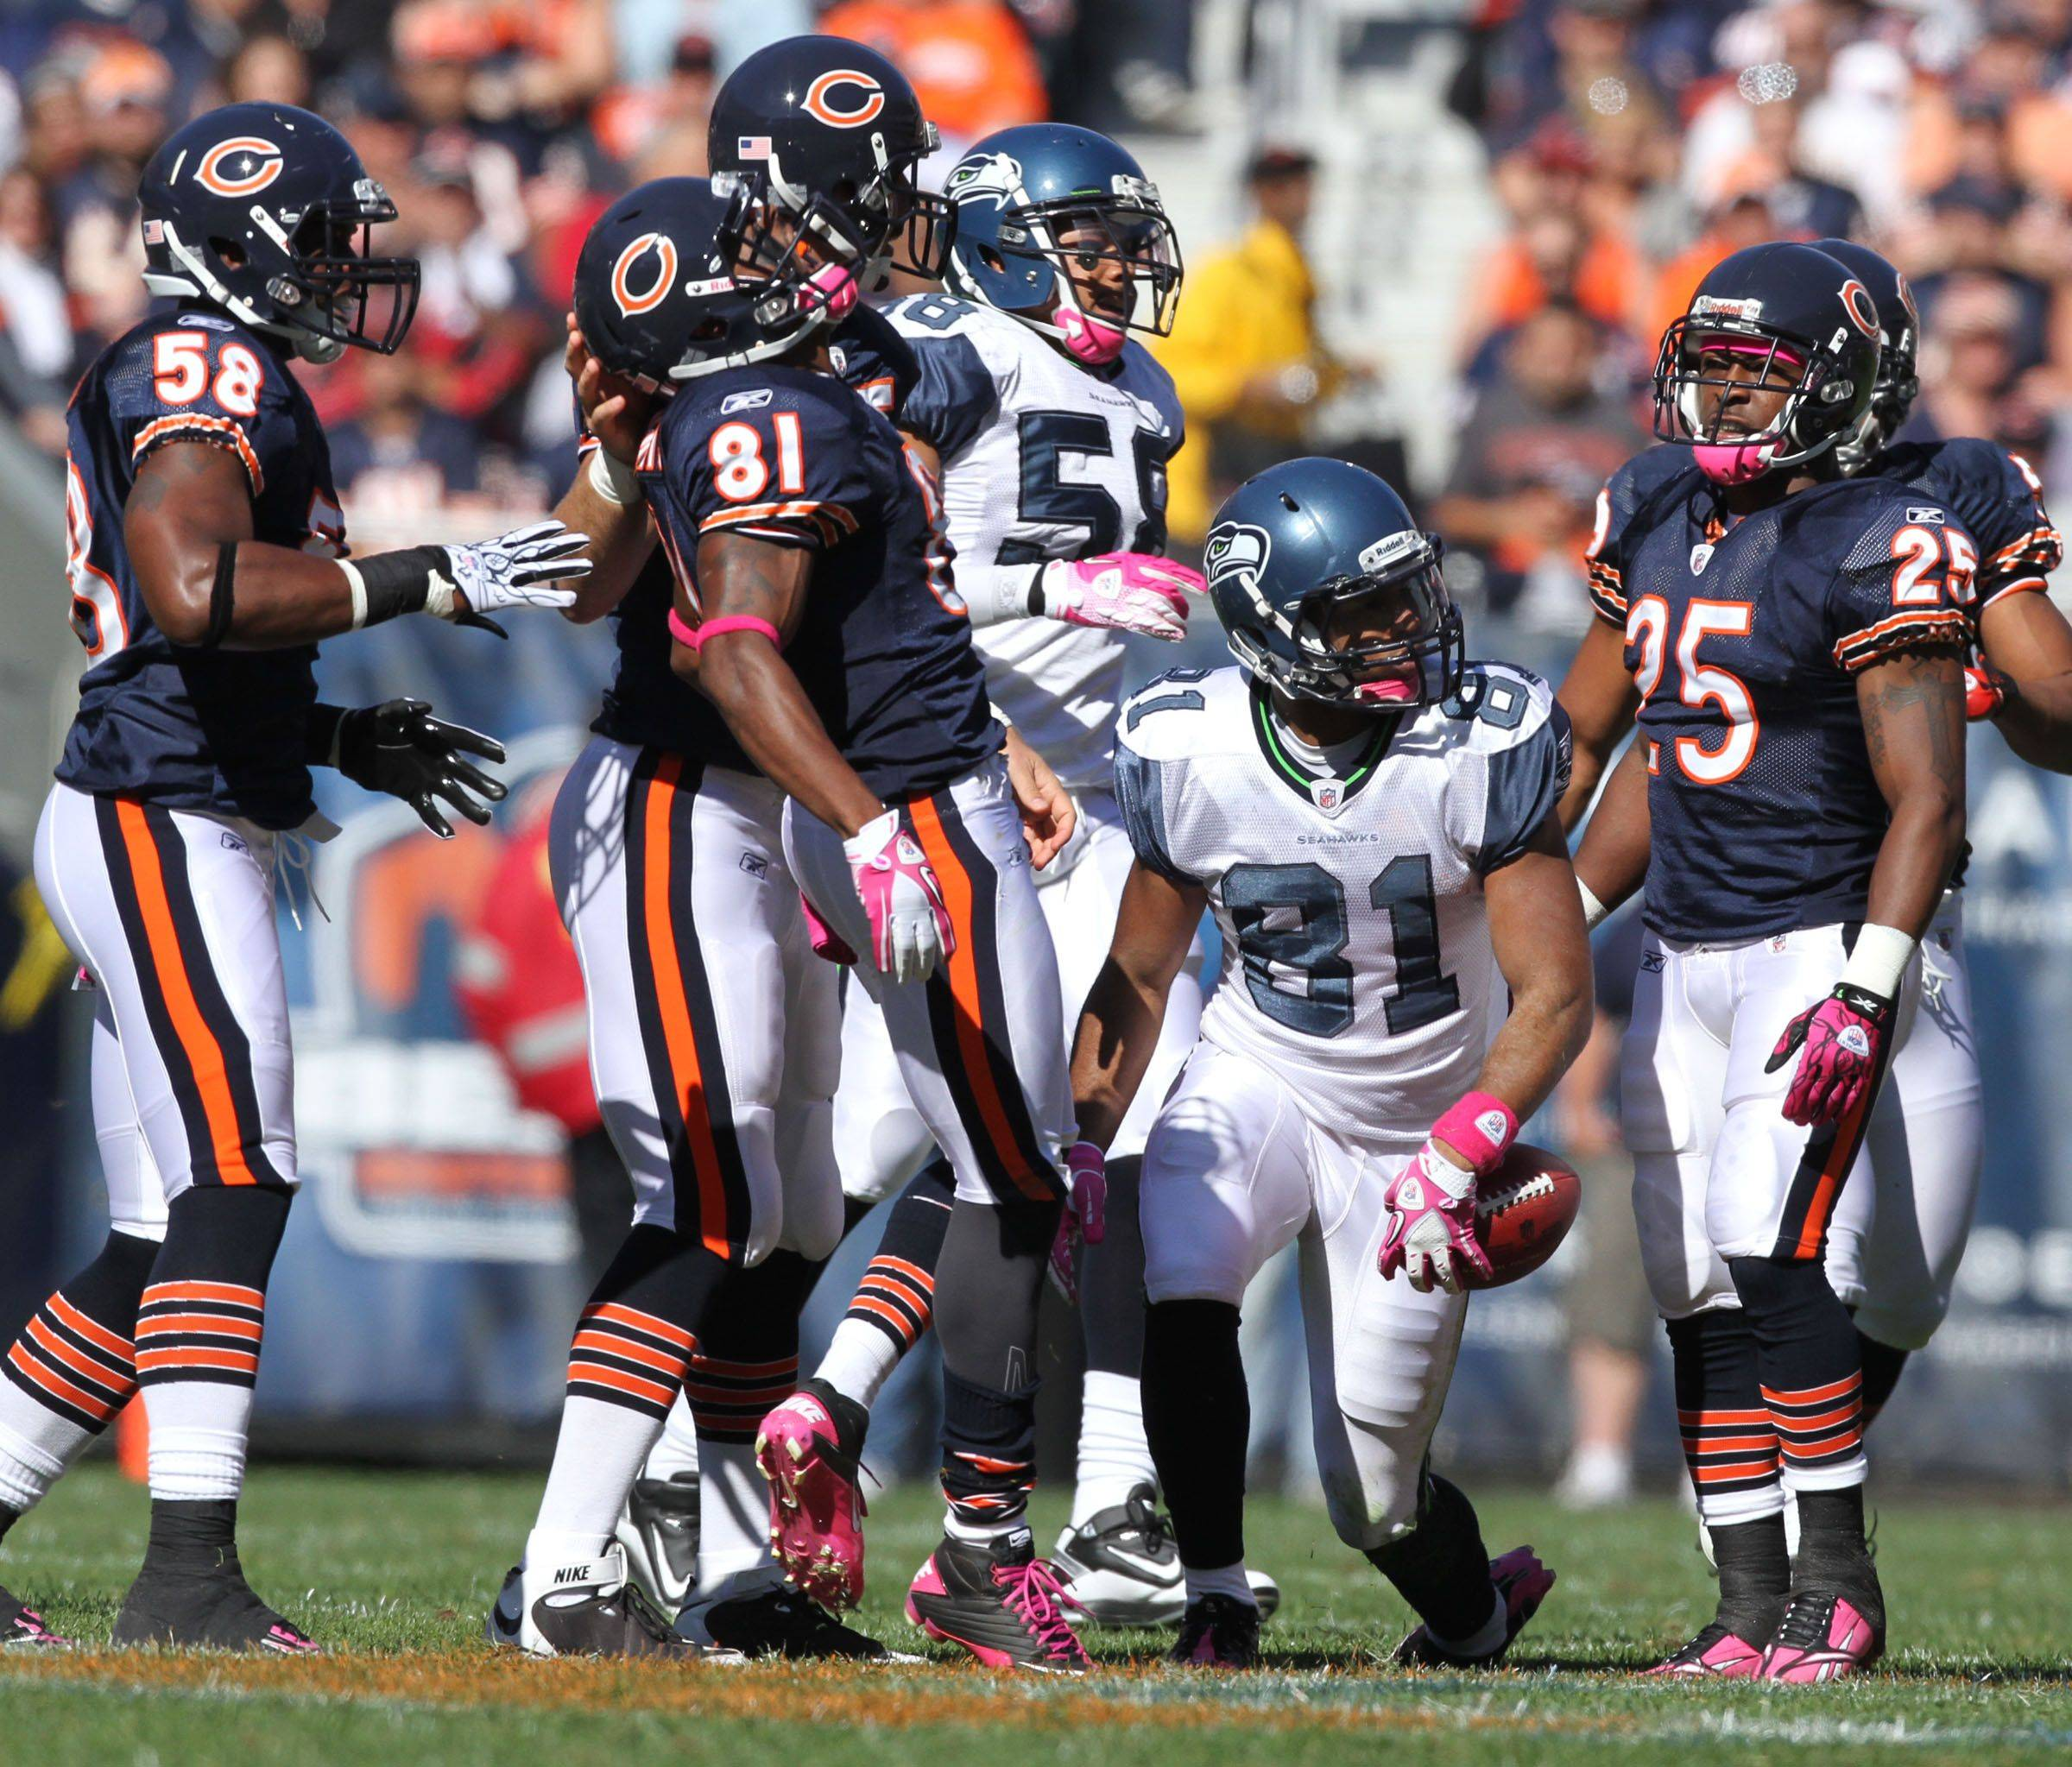 Chicago Bears celebrate pulling down Seattle Seahawks' wide receiver Golden Tate returning a punt at Soldier Field.